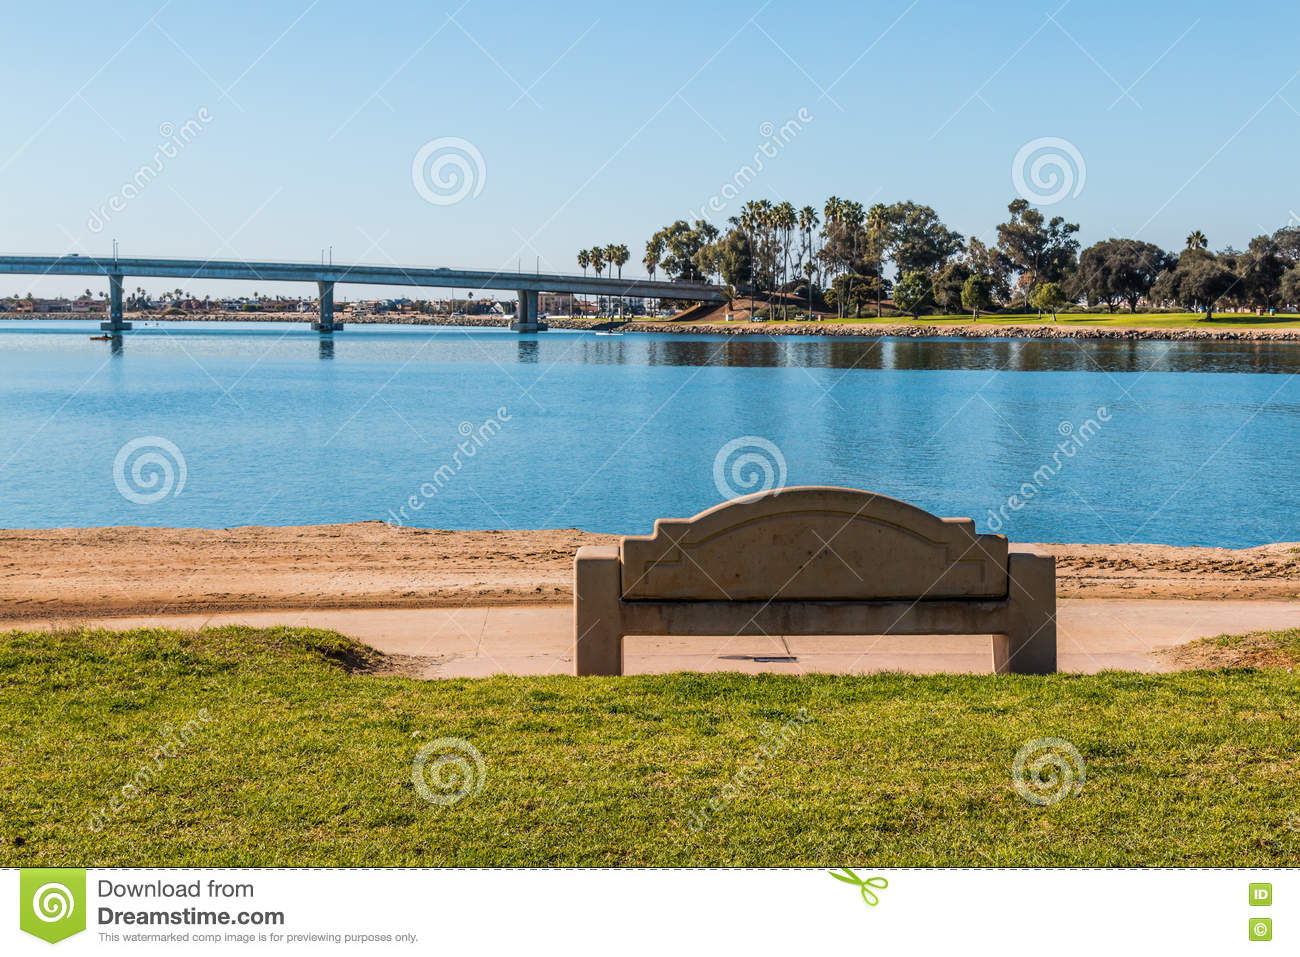 Casa de Balboa San Diego, Cement Bench On Mission Bay In San Diego Stock Photo - Image: 81877118